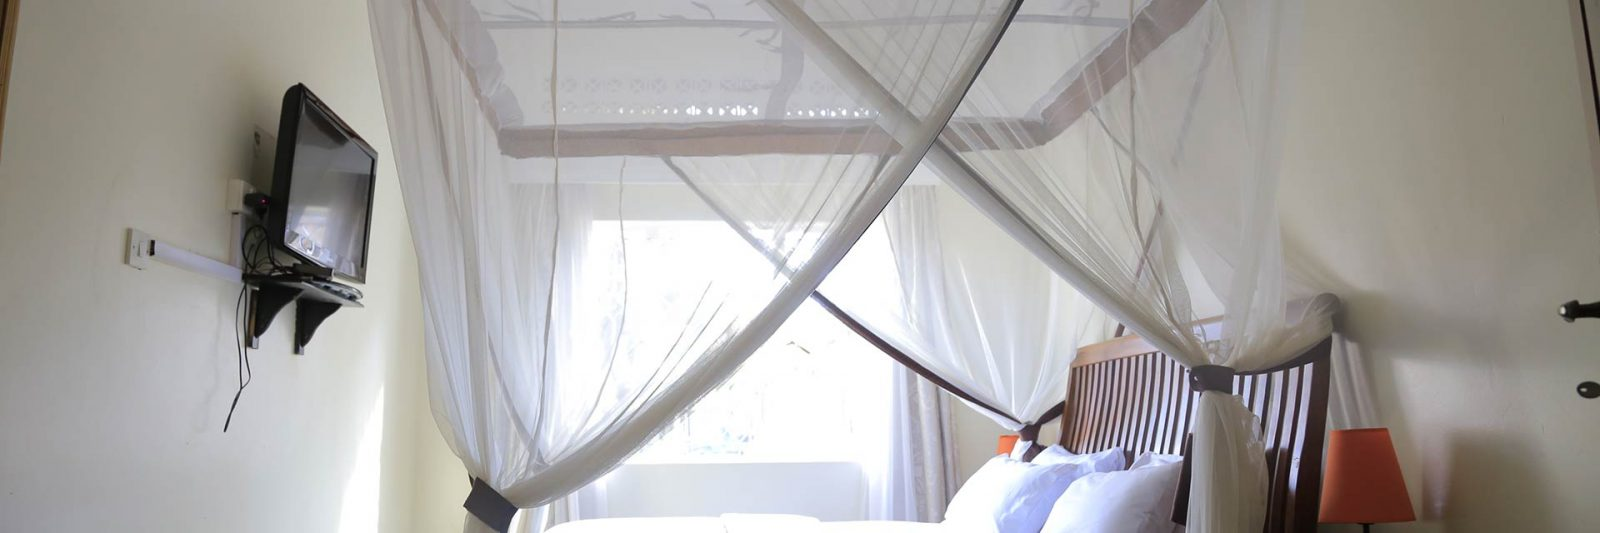 Mosquito Netting Protection